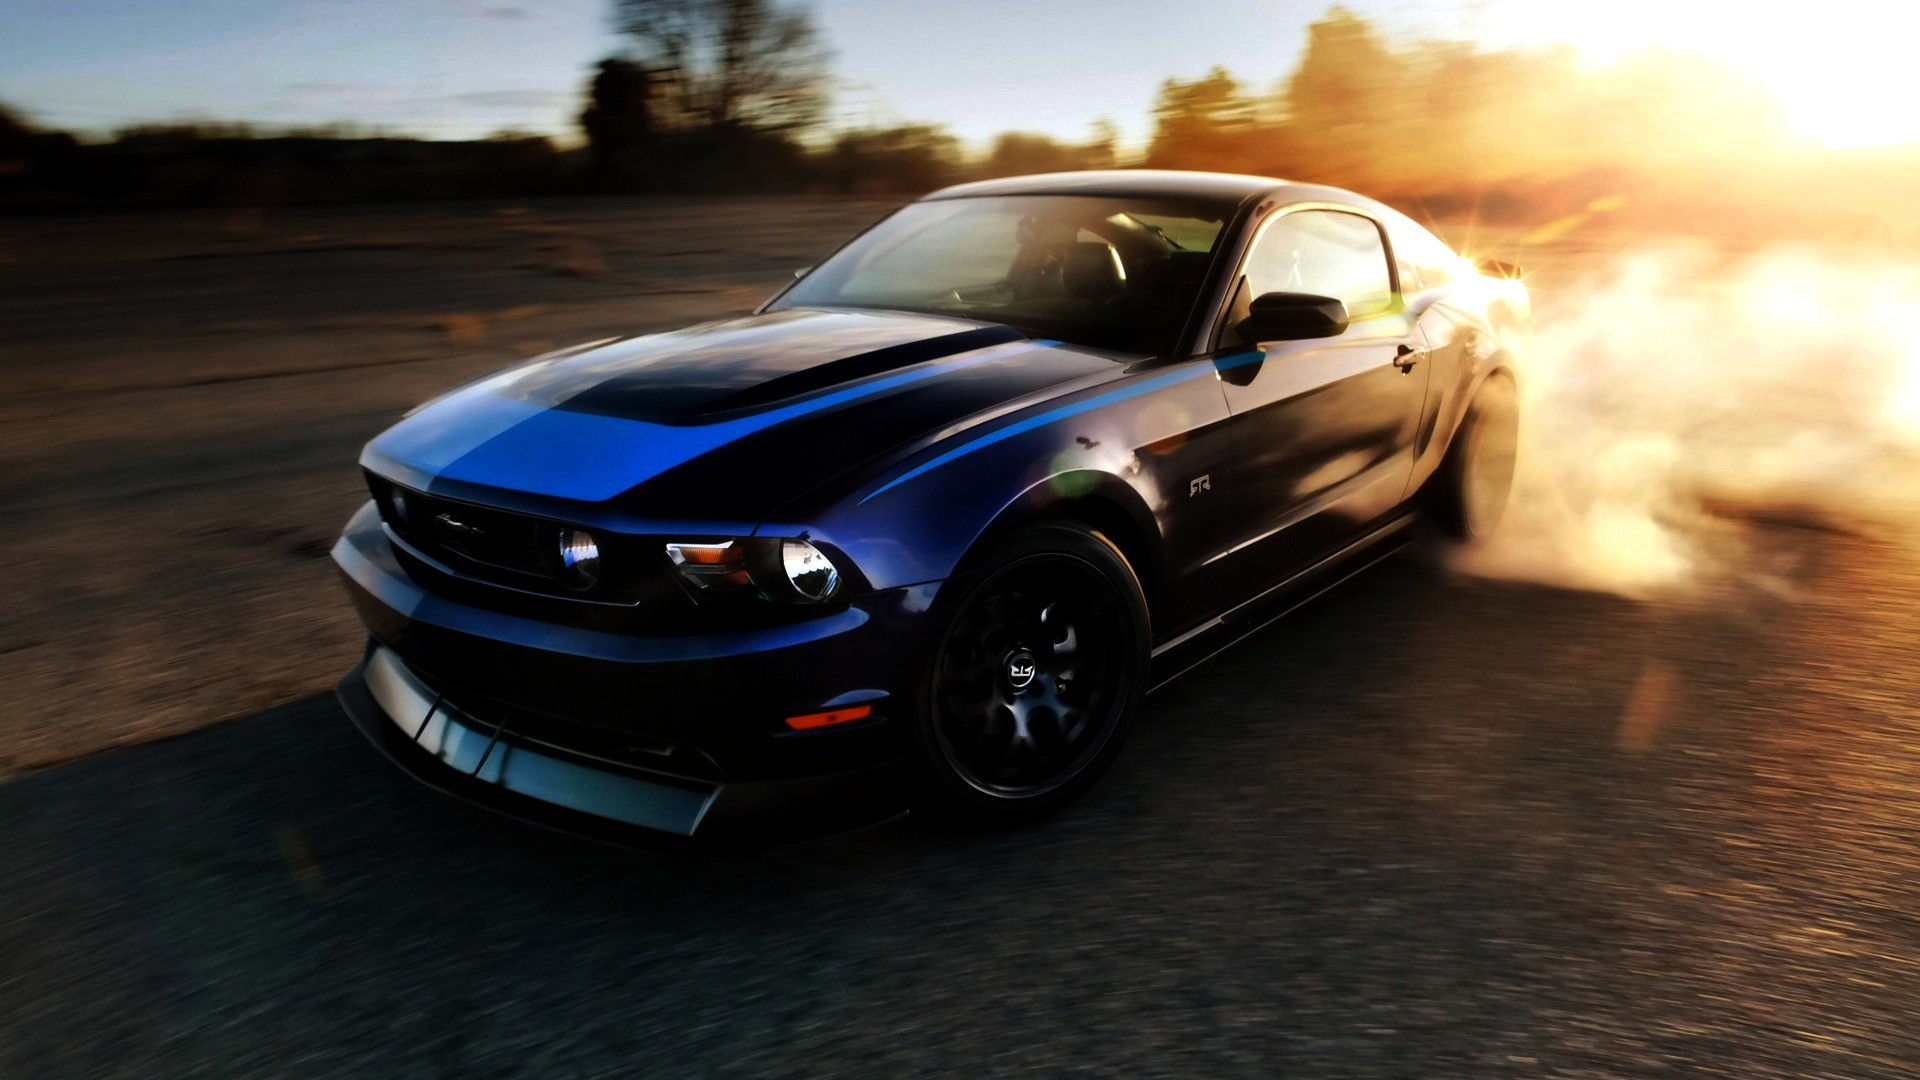 Muscle Car Burnout Download HD Wallpapers Attachment 9224 1920x1080